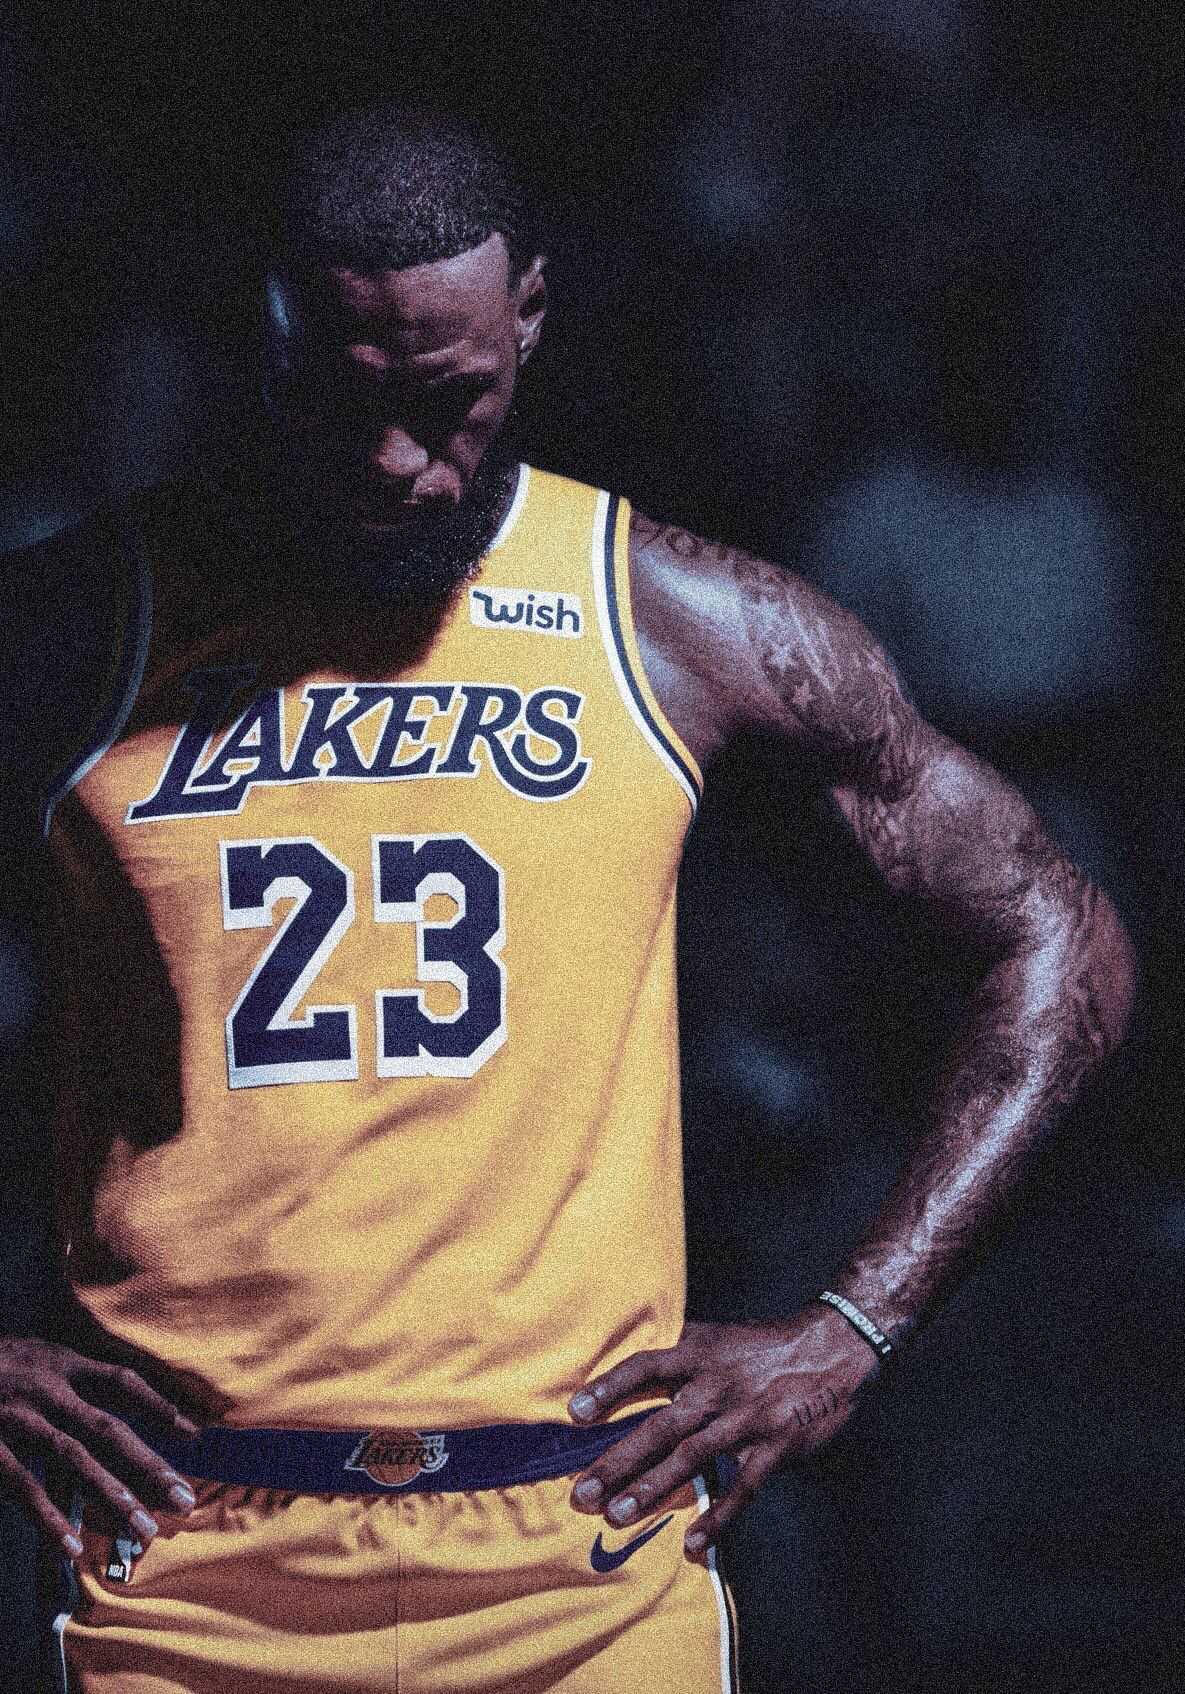 Wallpaper Hd Lebron James Lakers